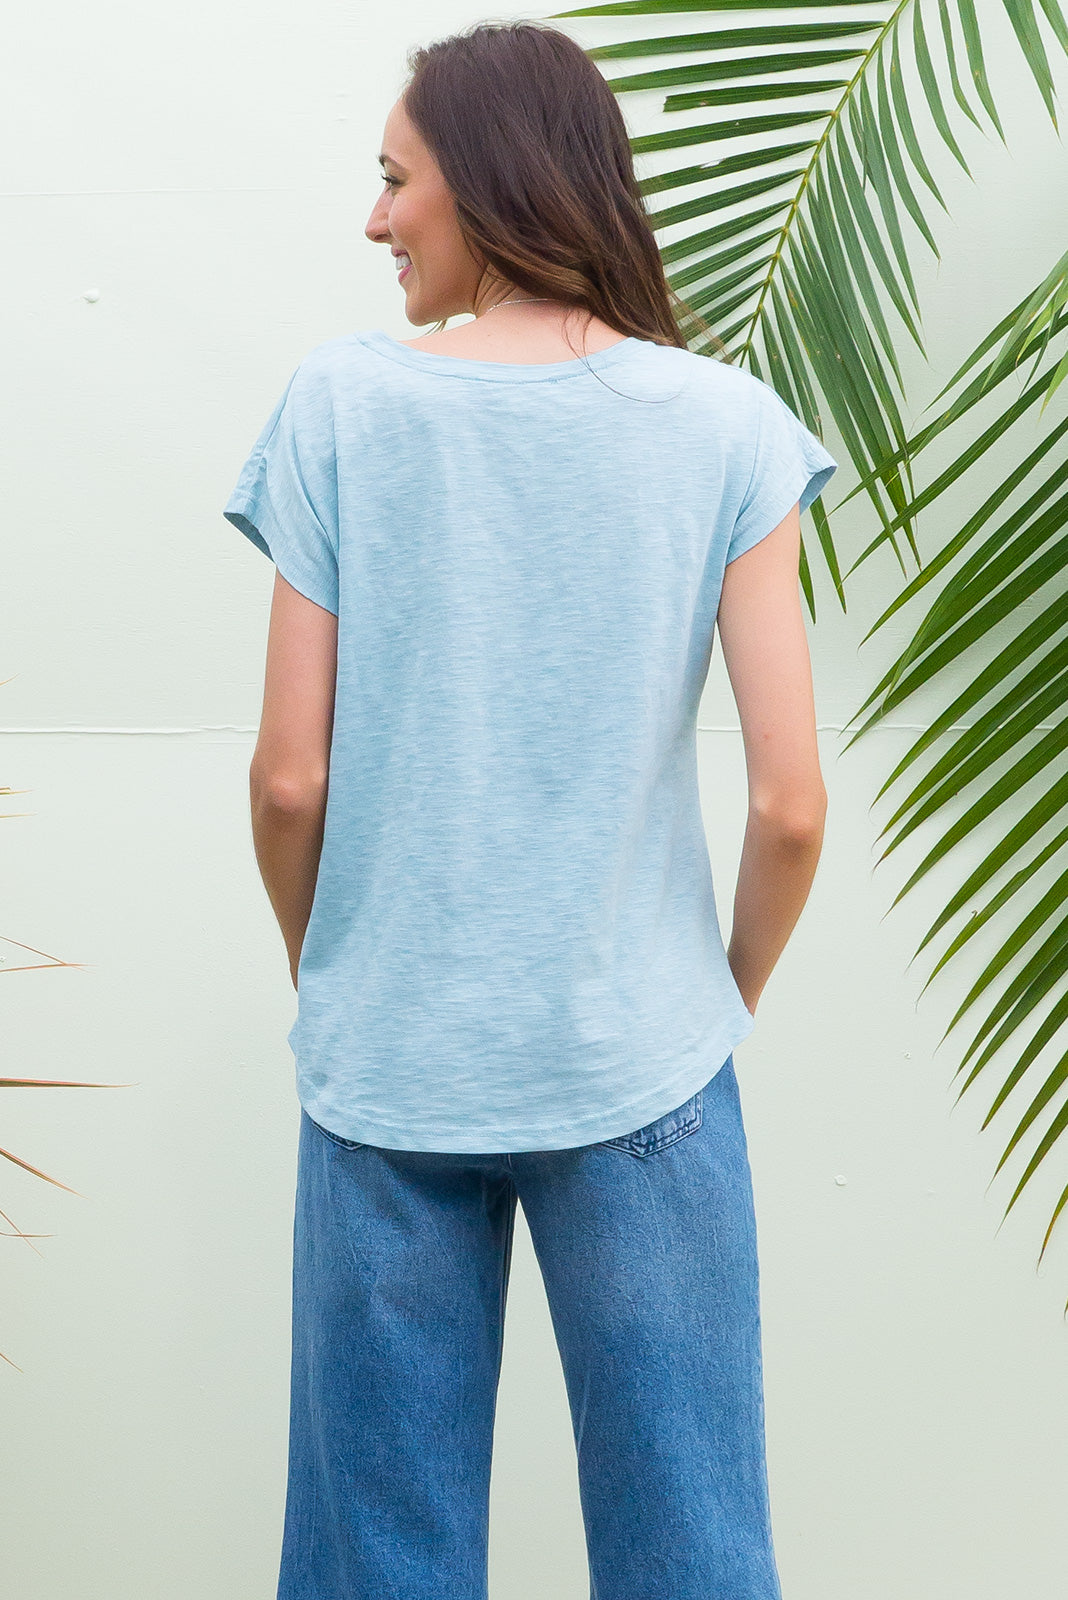 Phoenix short sleeve tshirt has a relaxed fit and is made of soft cotton polyester fabric in a warm sky blue colour